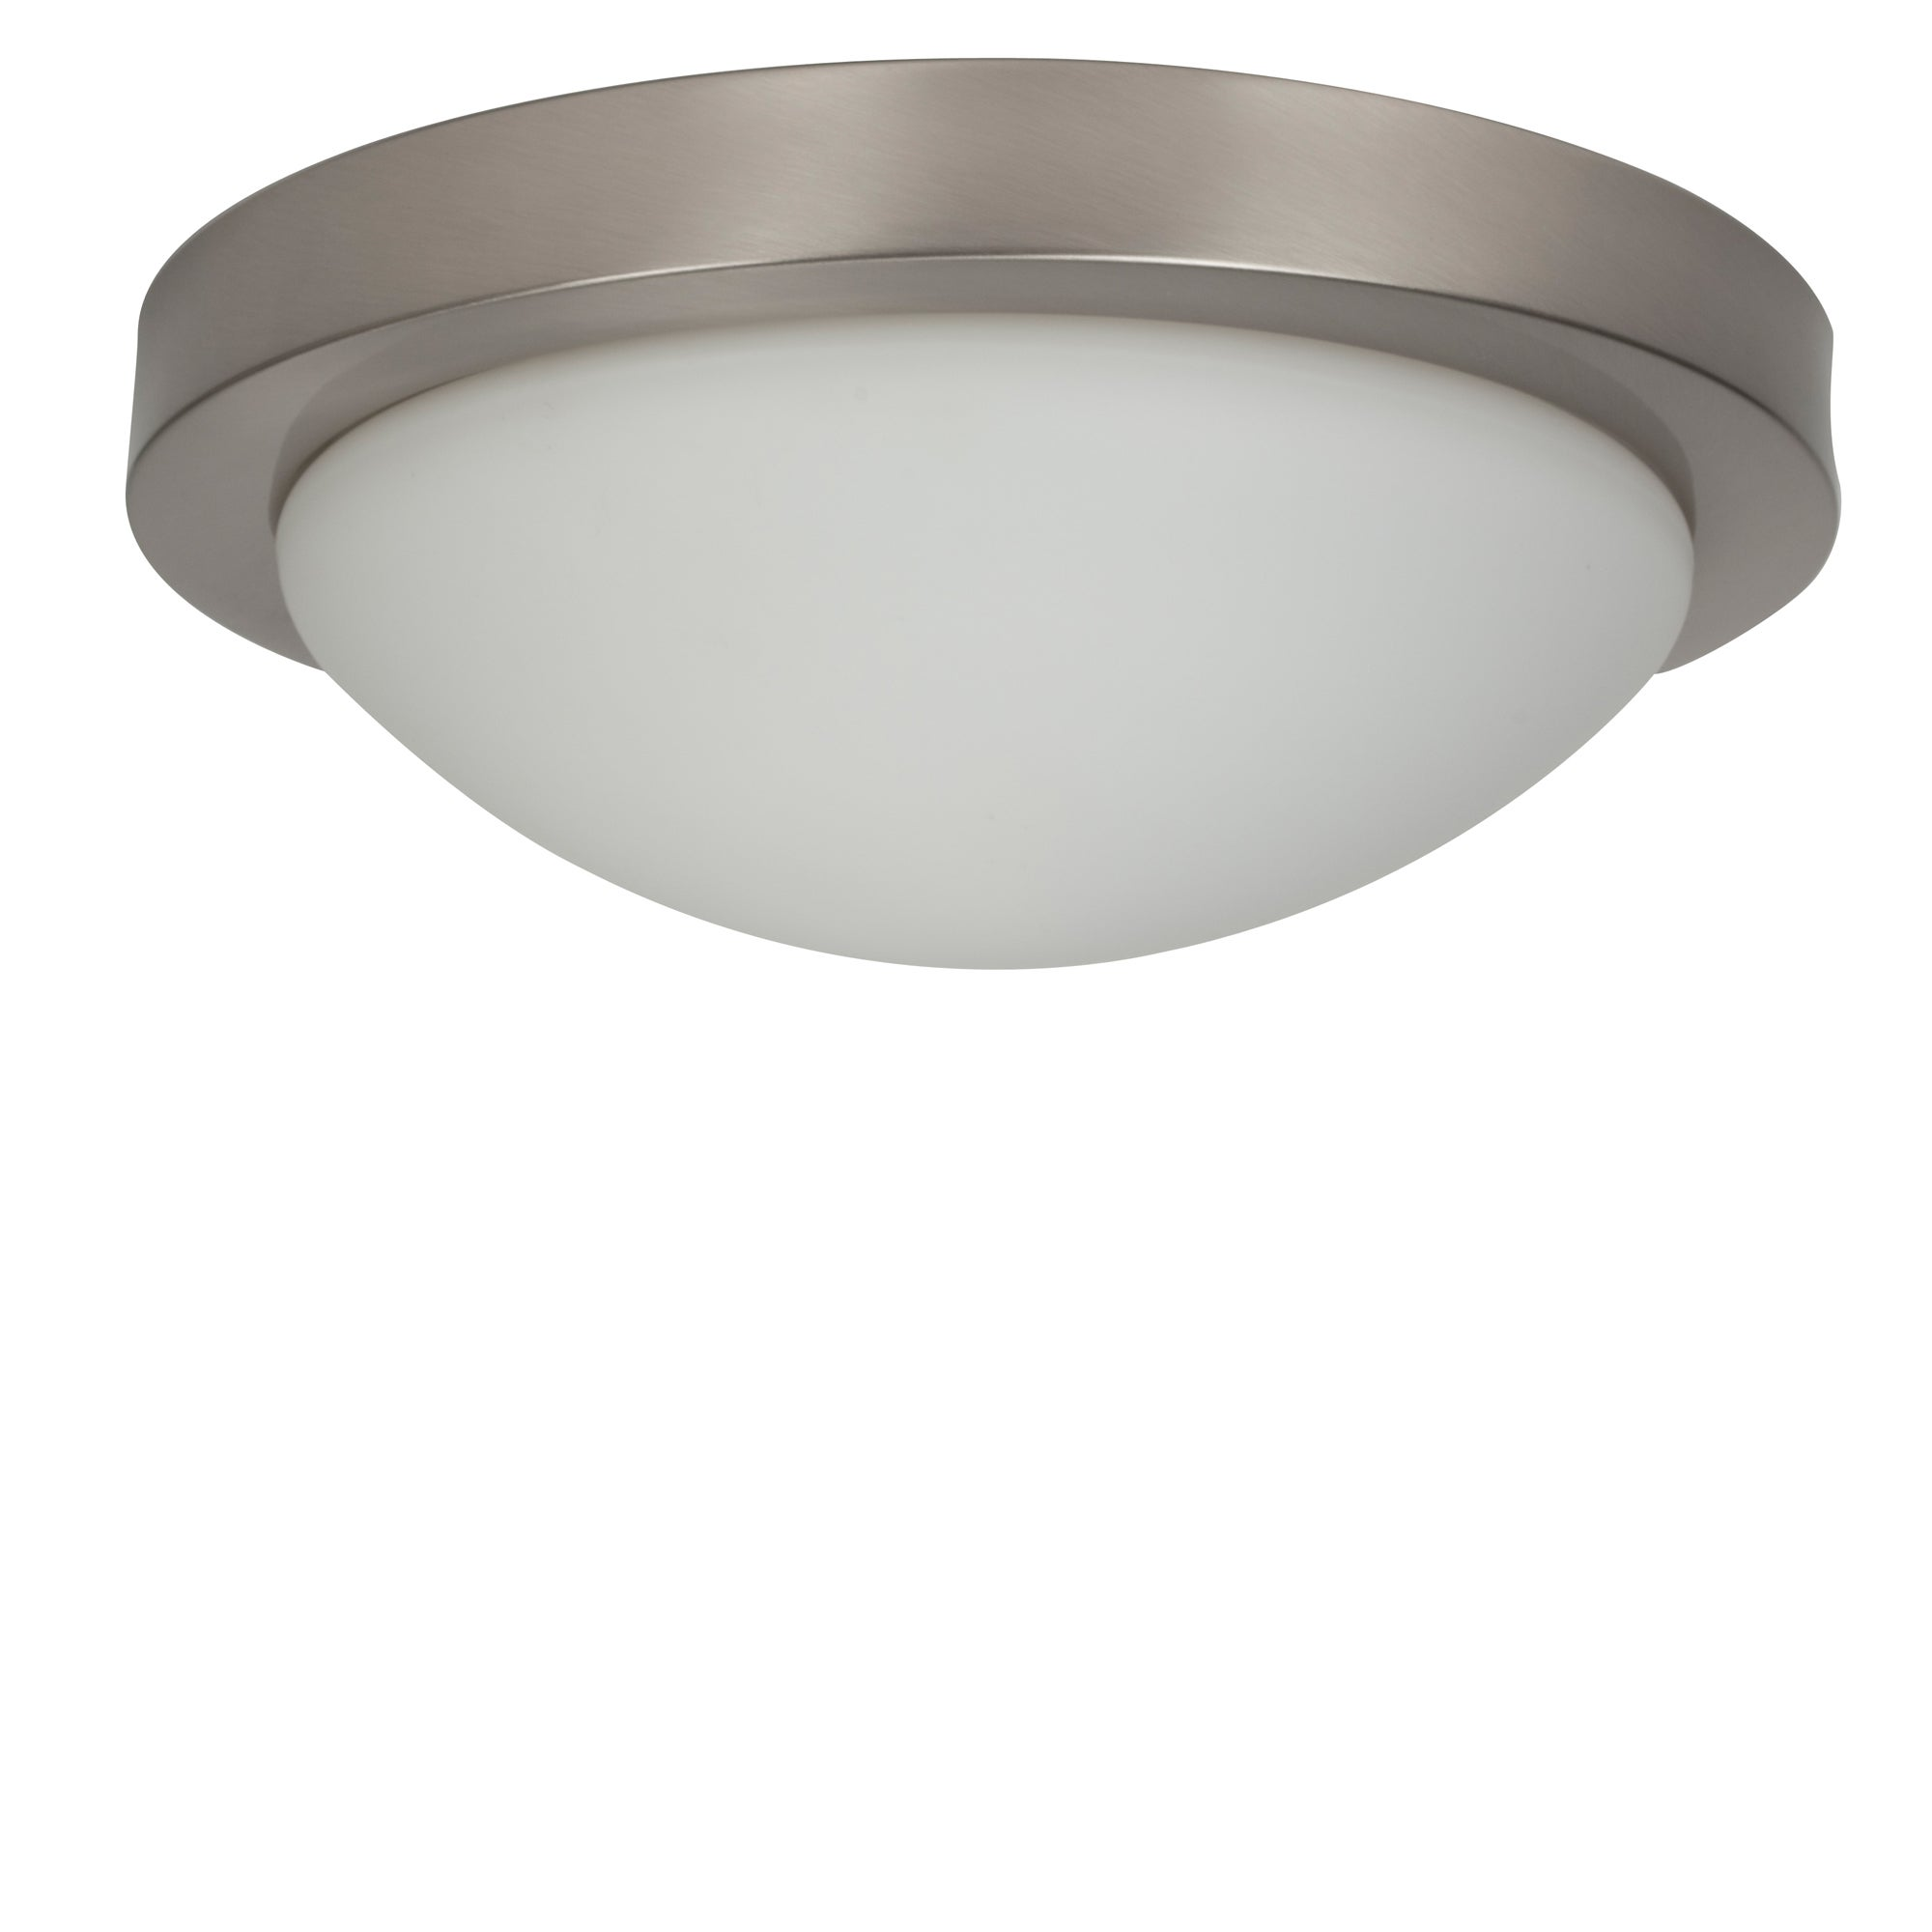 Large Bathroom Flush Ceiling Light Fitting